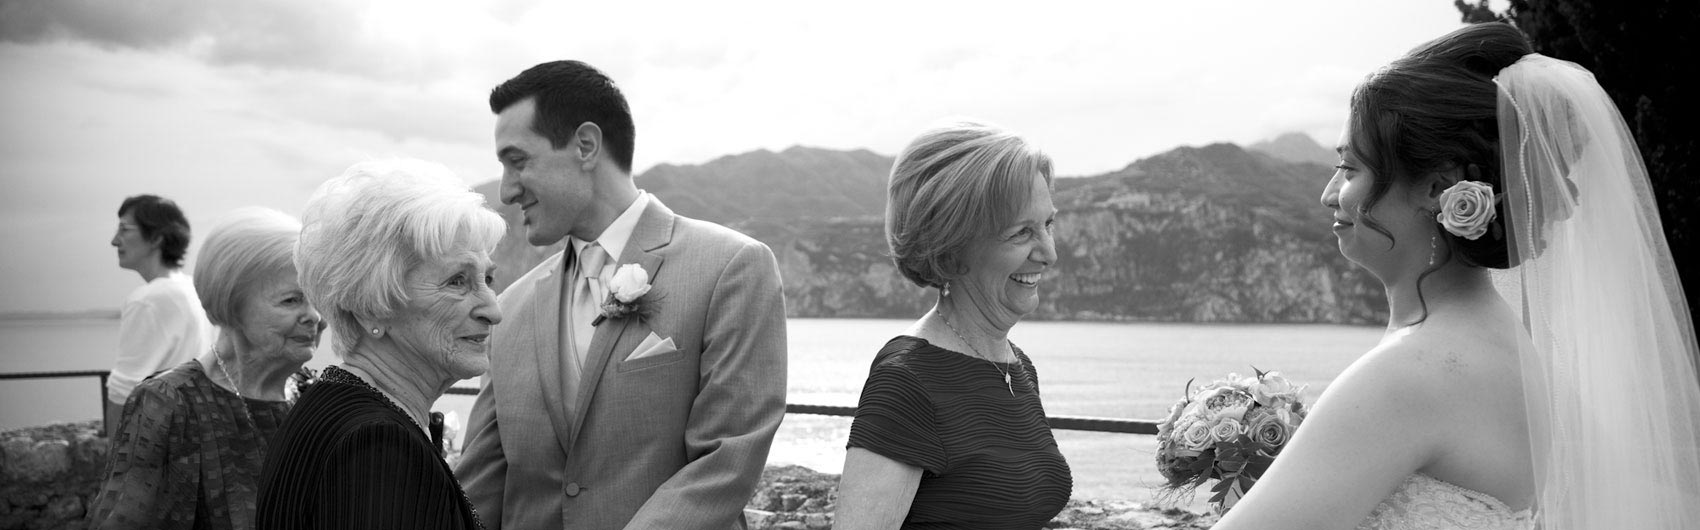 malcesine-civil-weddings